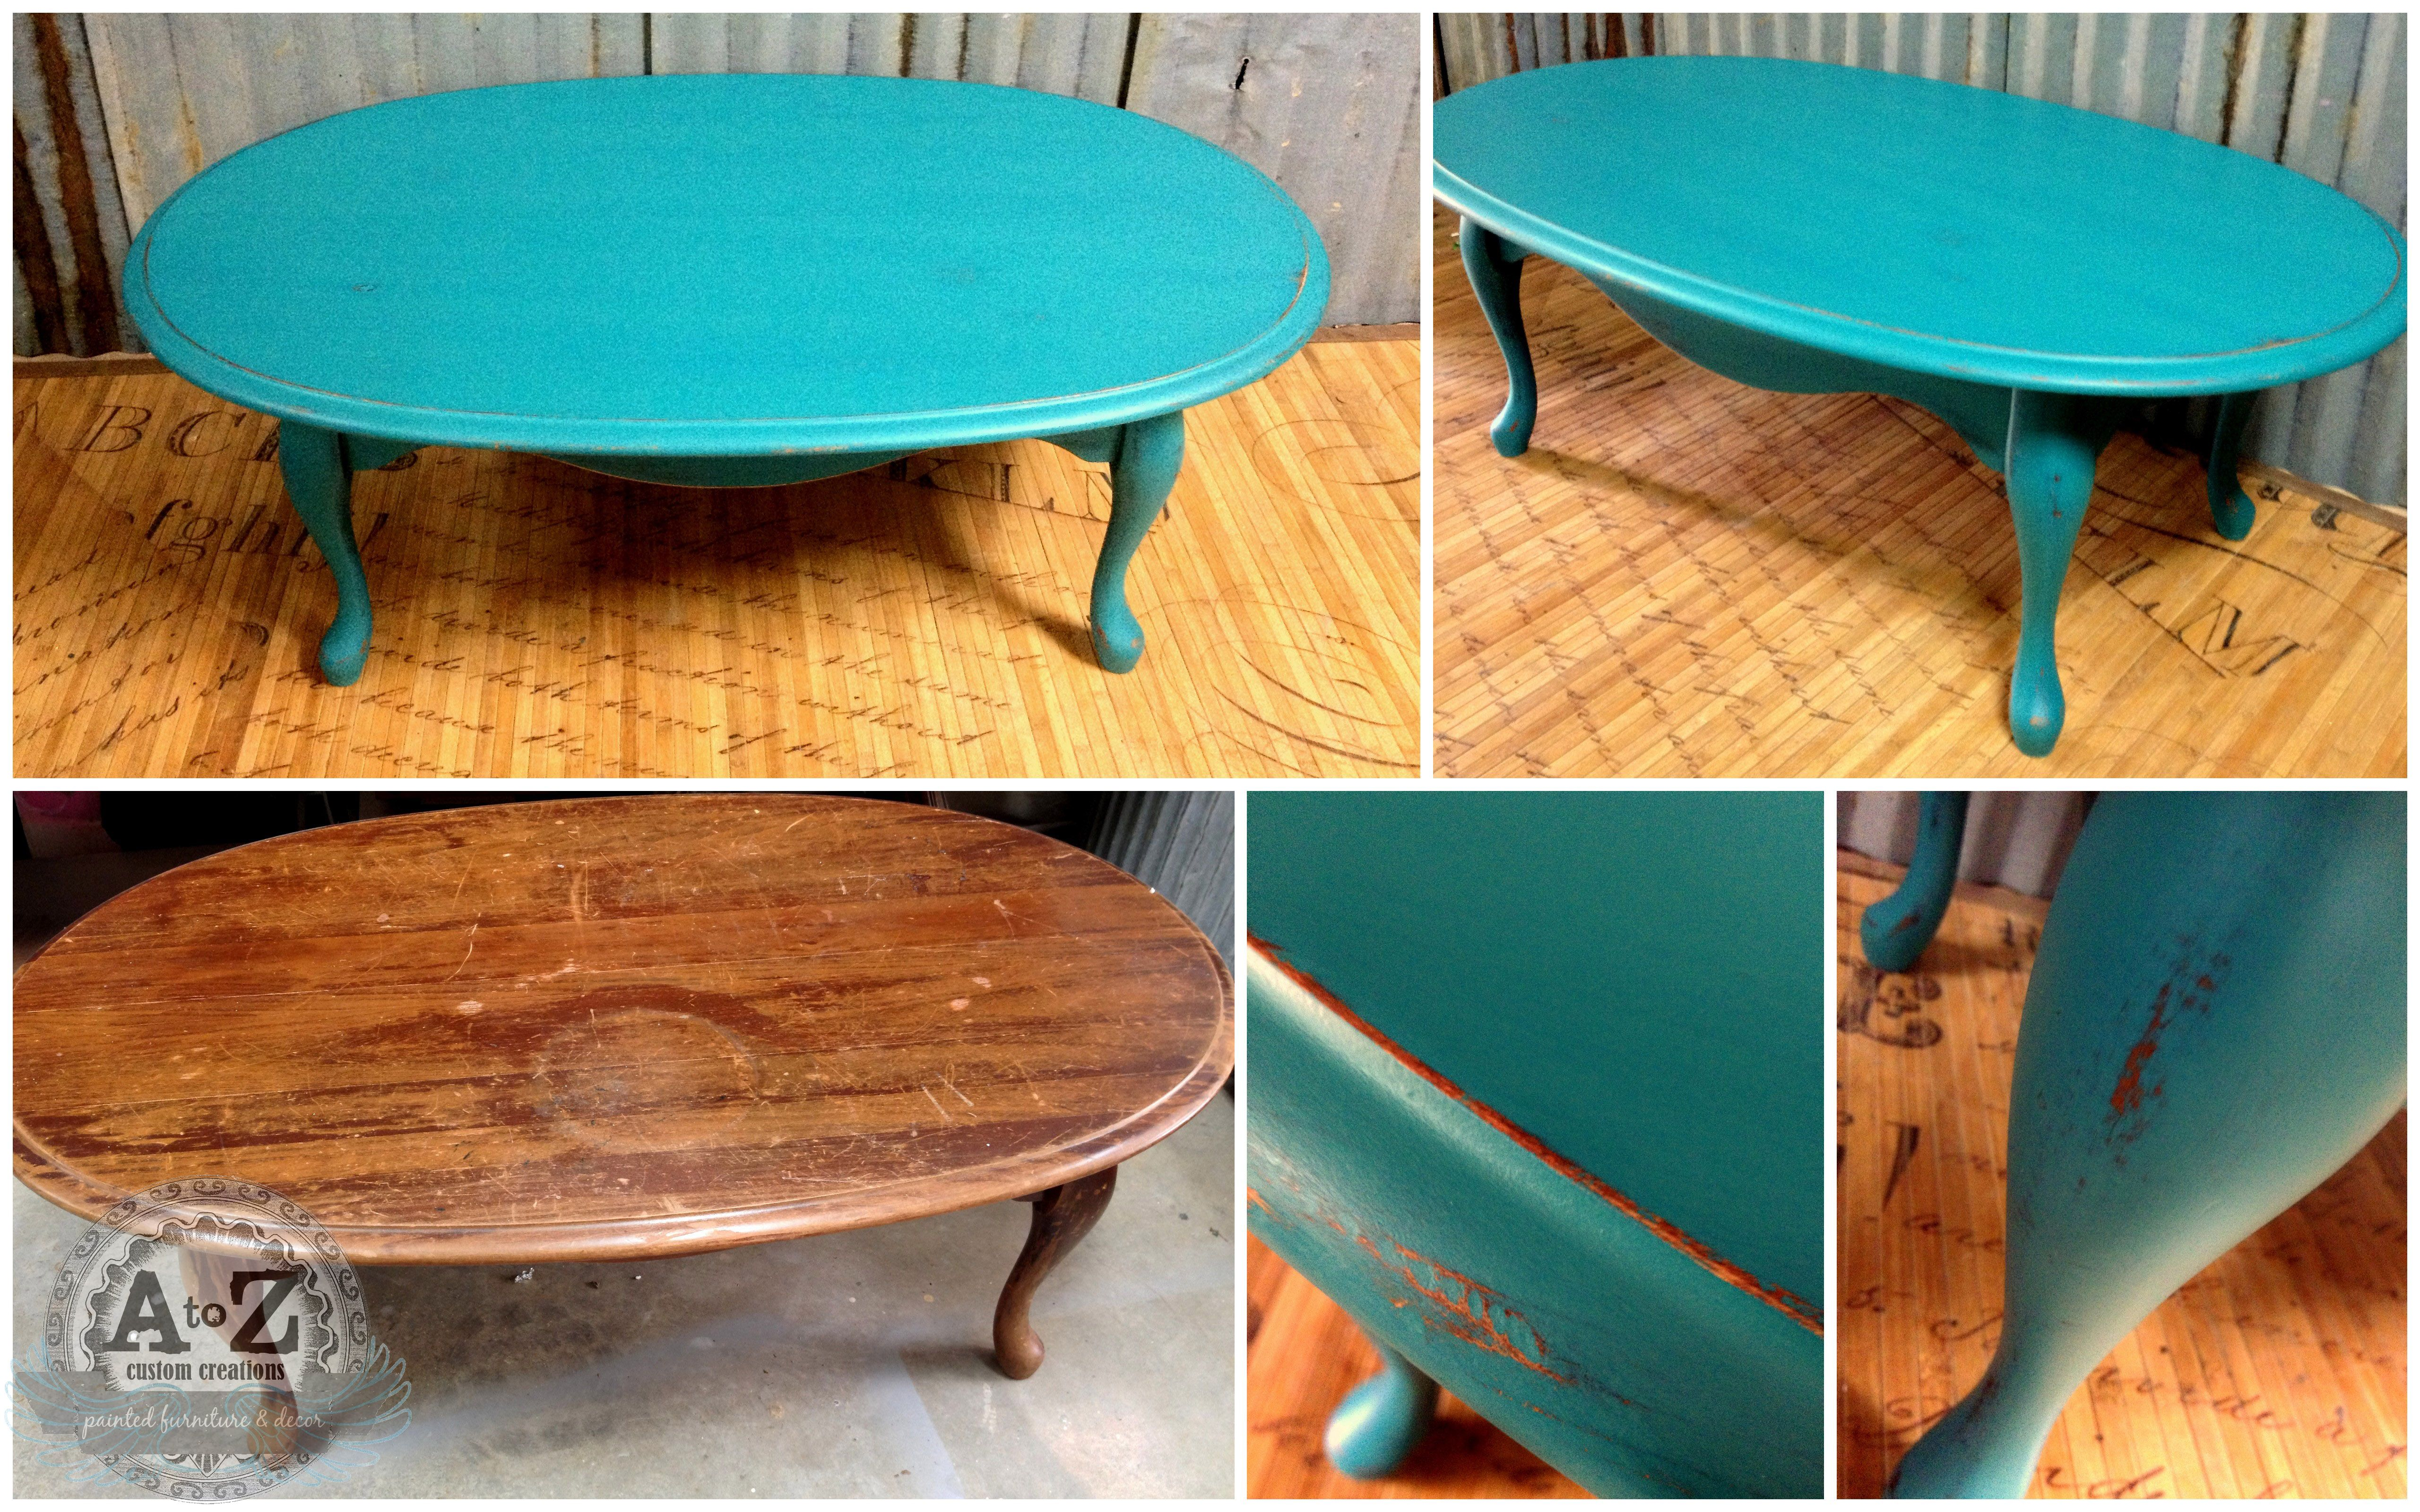 Refreshed coffee table by a to z custom creations for Teal coffee table